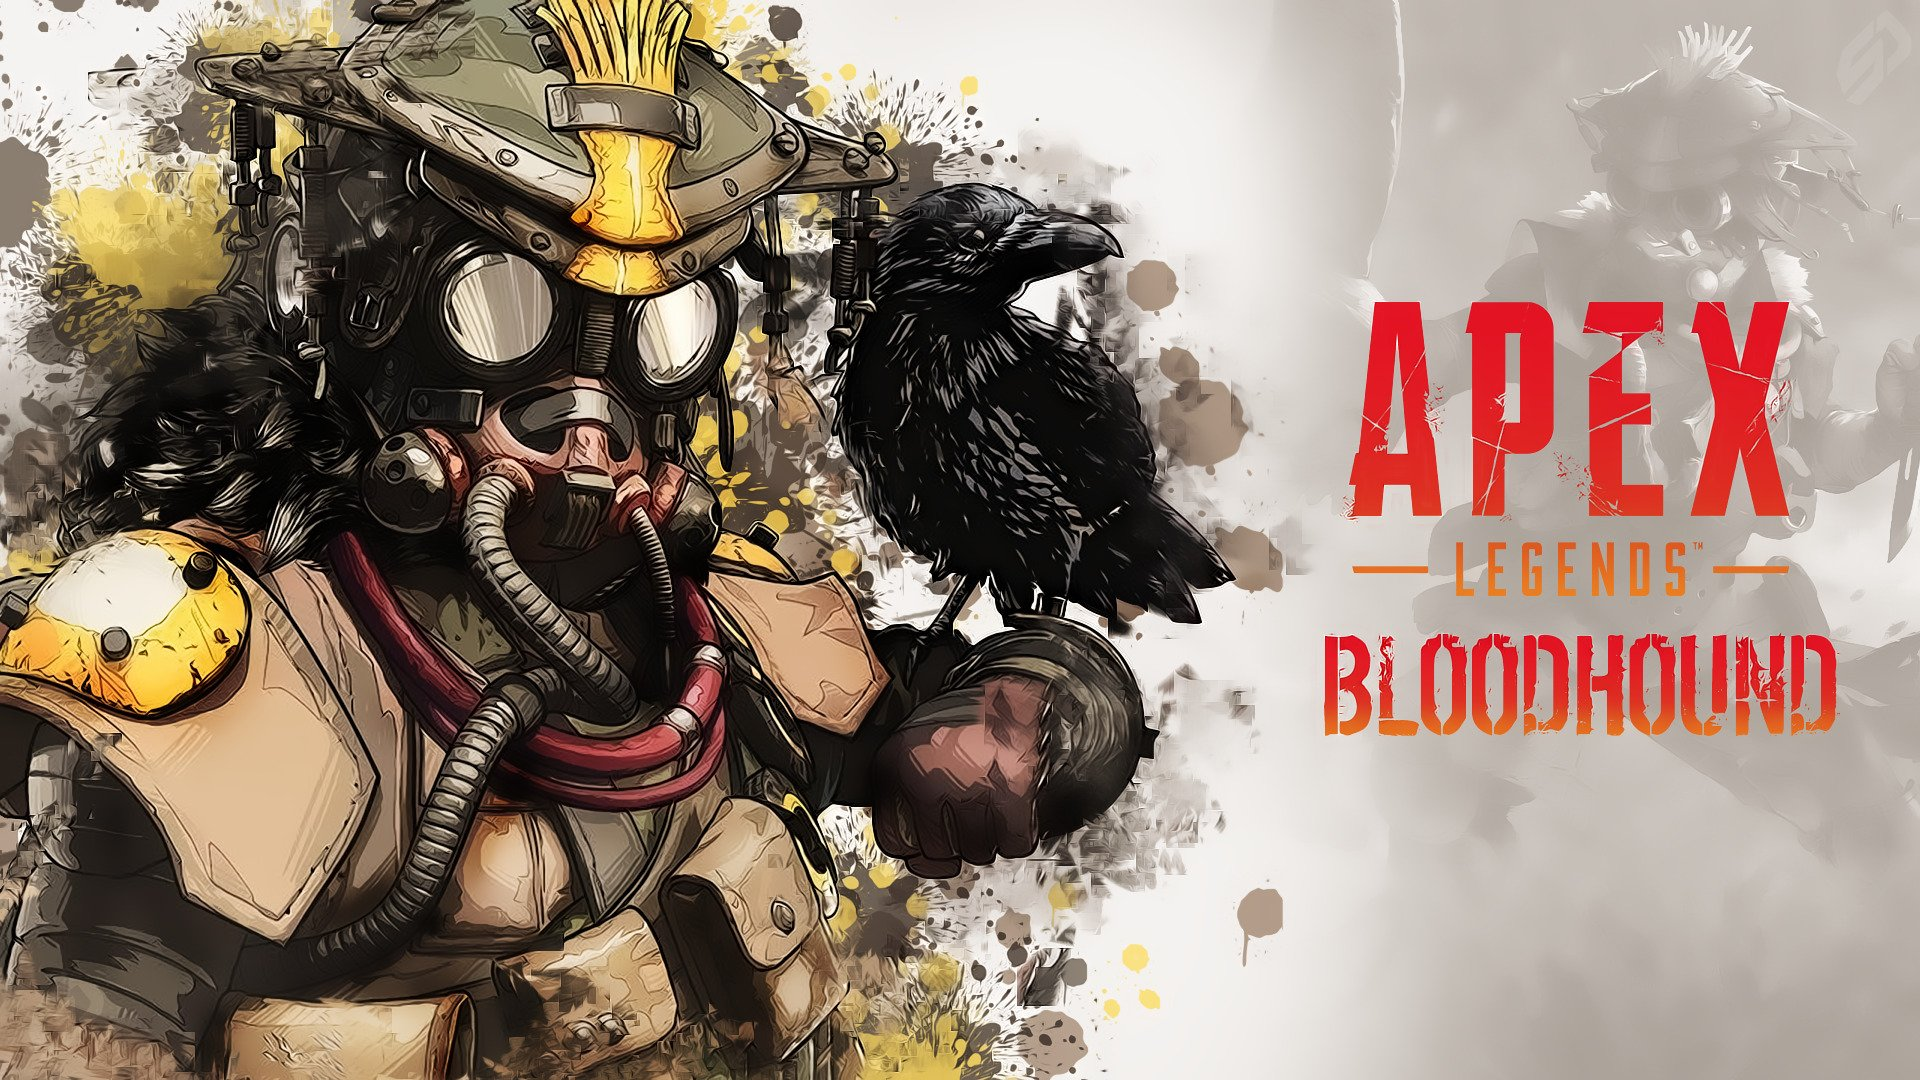 992038 - Apex Legends Bloodhound Hd - Apex wallpaper 4k 2019, Apex phone wallpaper hd 4k, Apex legends wallpaper phone, Apex legends wallpaper hd 4kwallpaper, apex legends characters wallpaper hd 4k, Apex legends background hd 4k wallpaper, Apex Legends 4k wallpaper